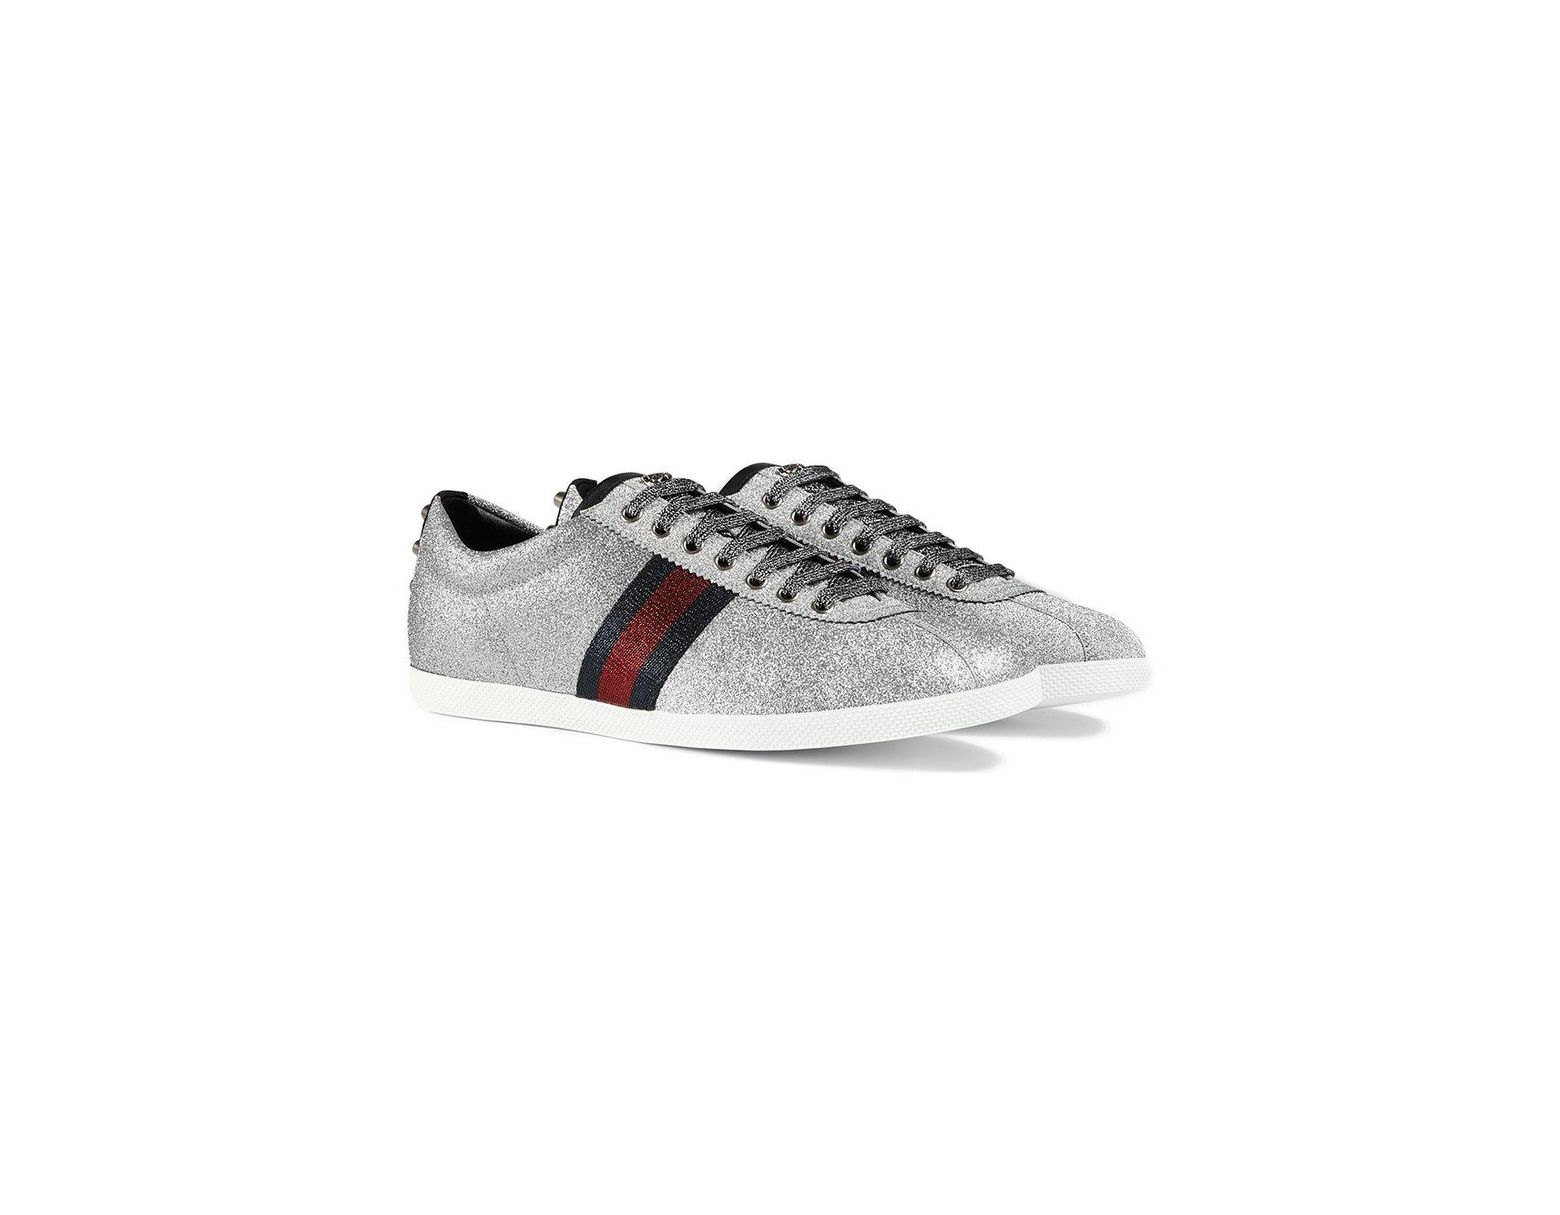 66a4b5686a7 Lyst - Gucci Glitter Web Studded Sneaker in Metallic for Men - Save 6%